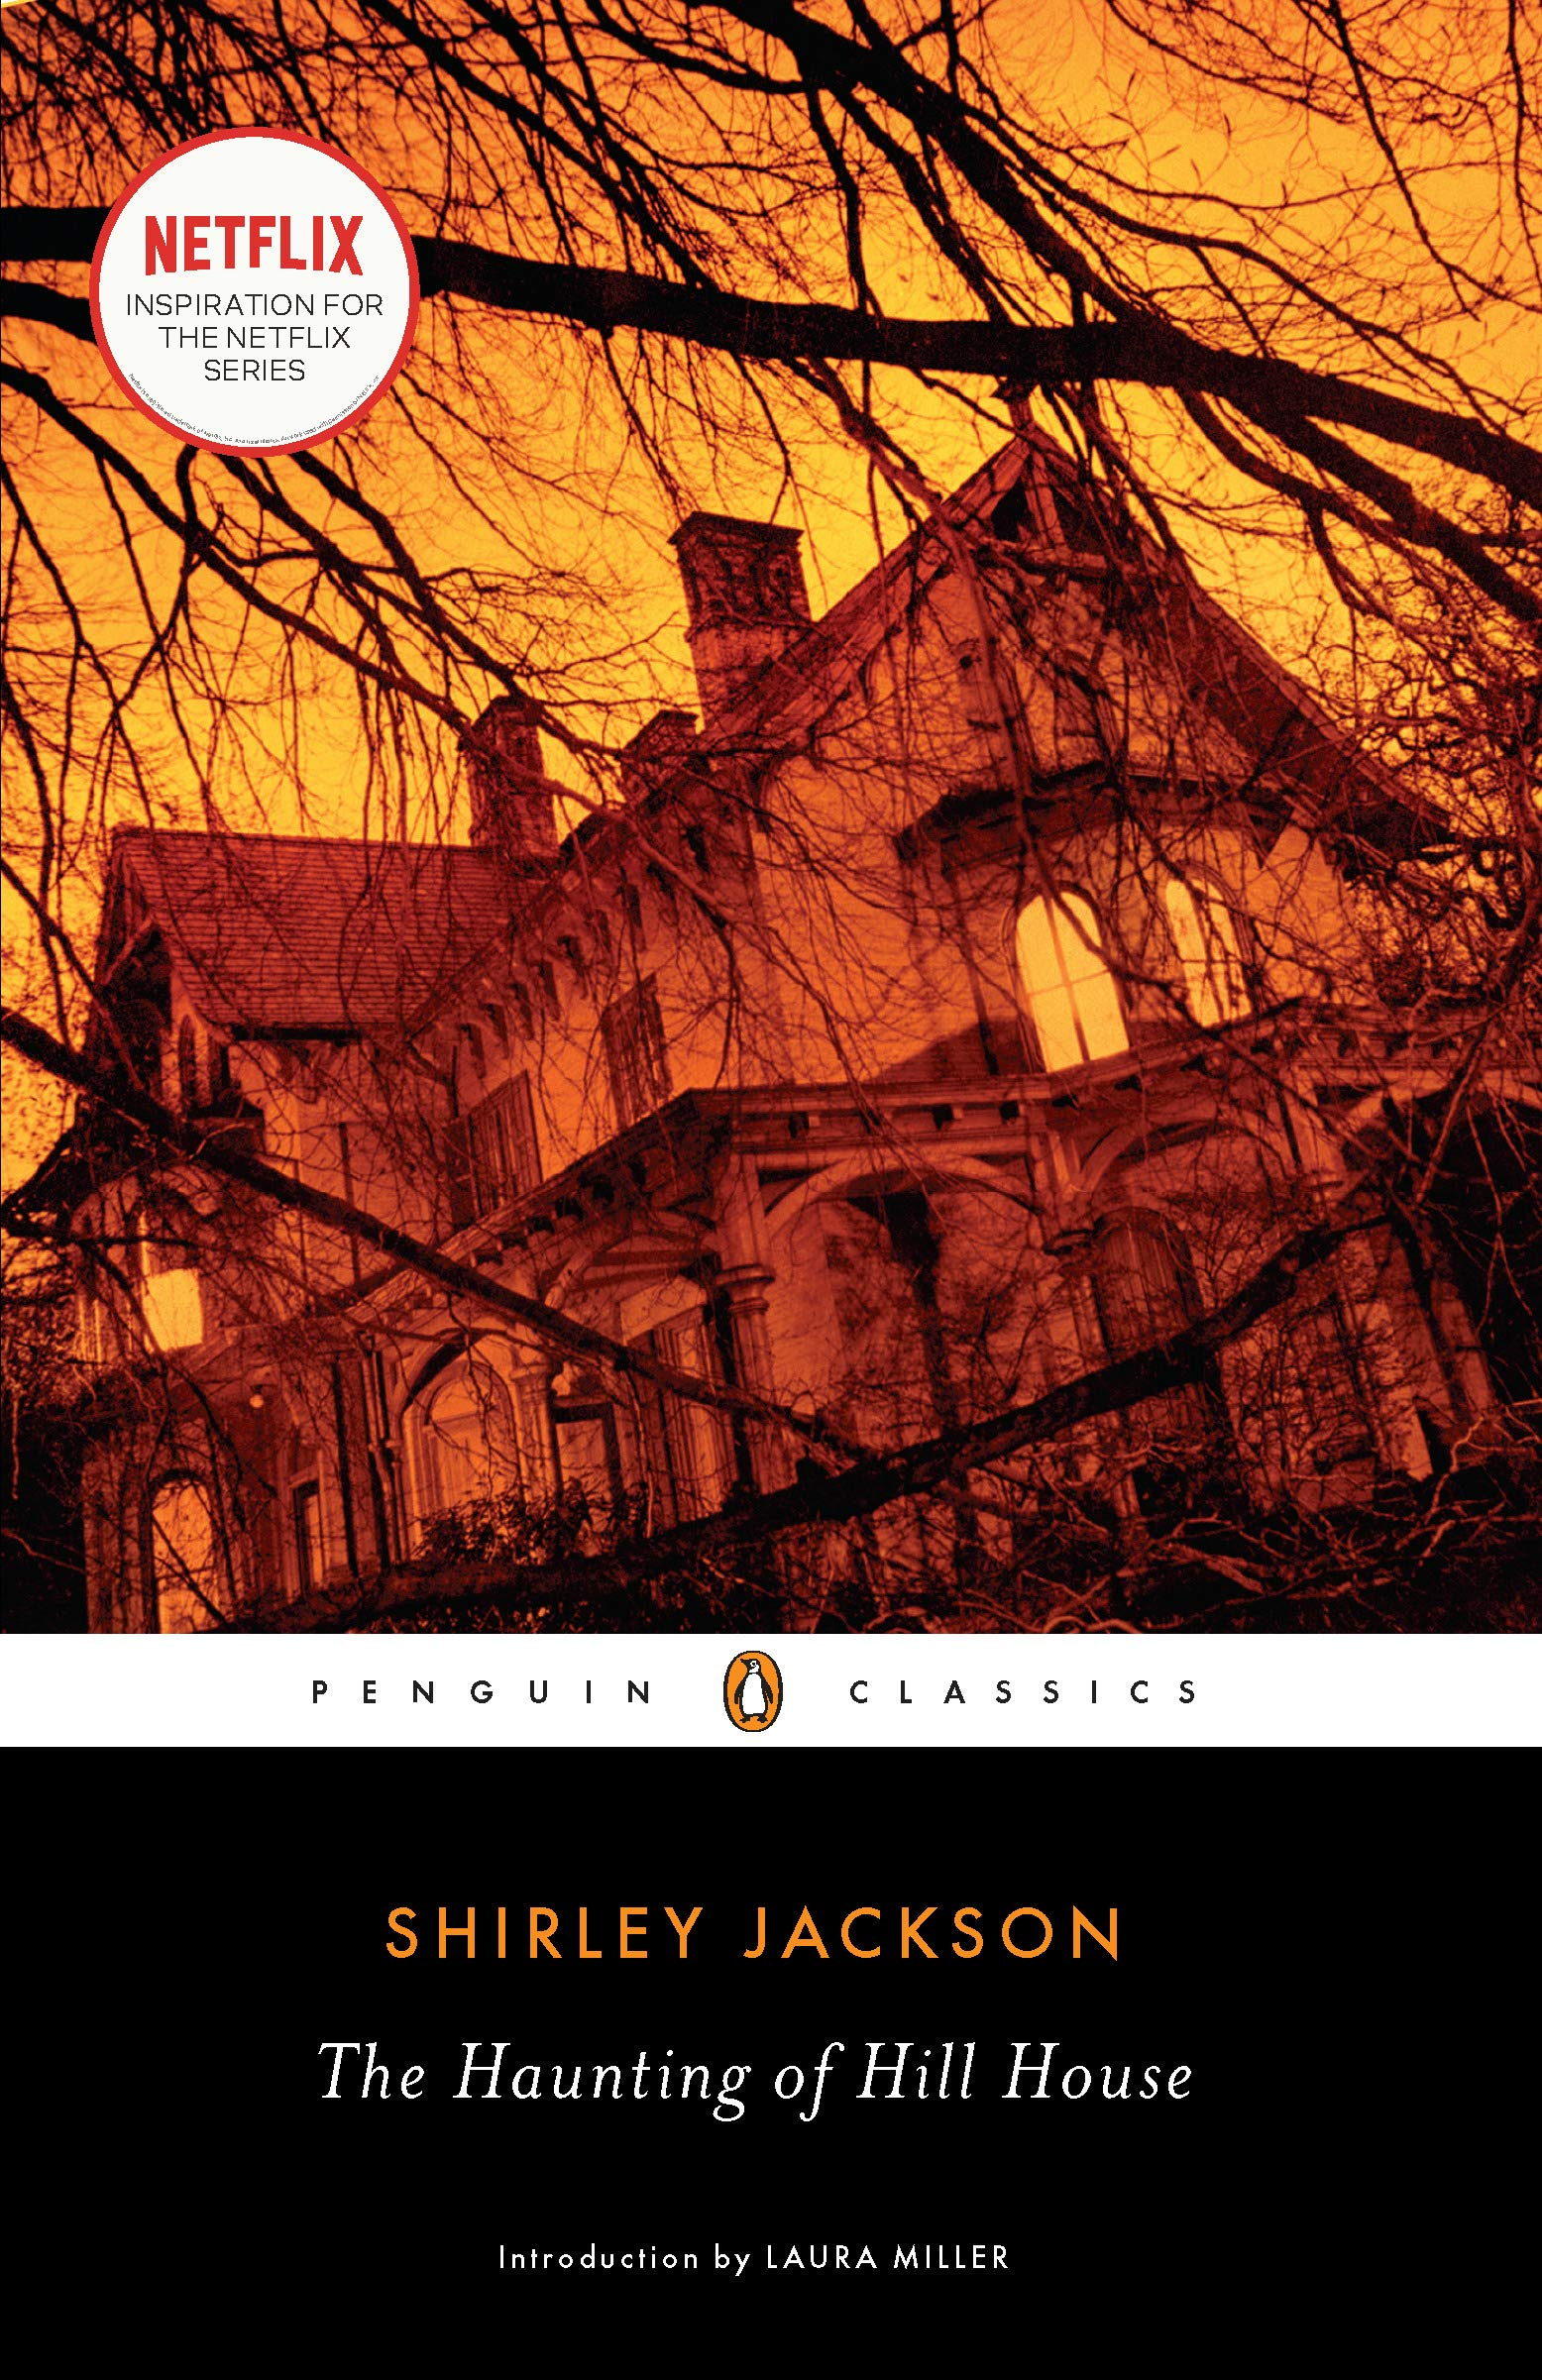 The Haunting Of Hill House Livre : haunting, house, livre, Haunting, Colline, House, Livres, Photo, (42750536), Fanpop